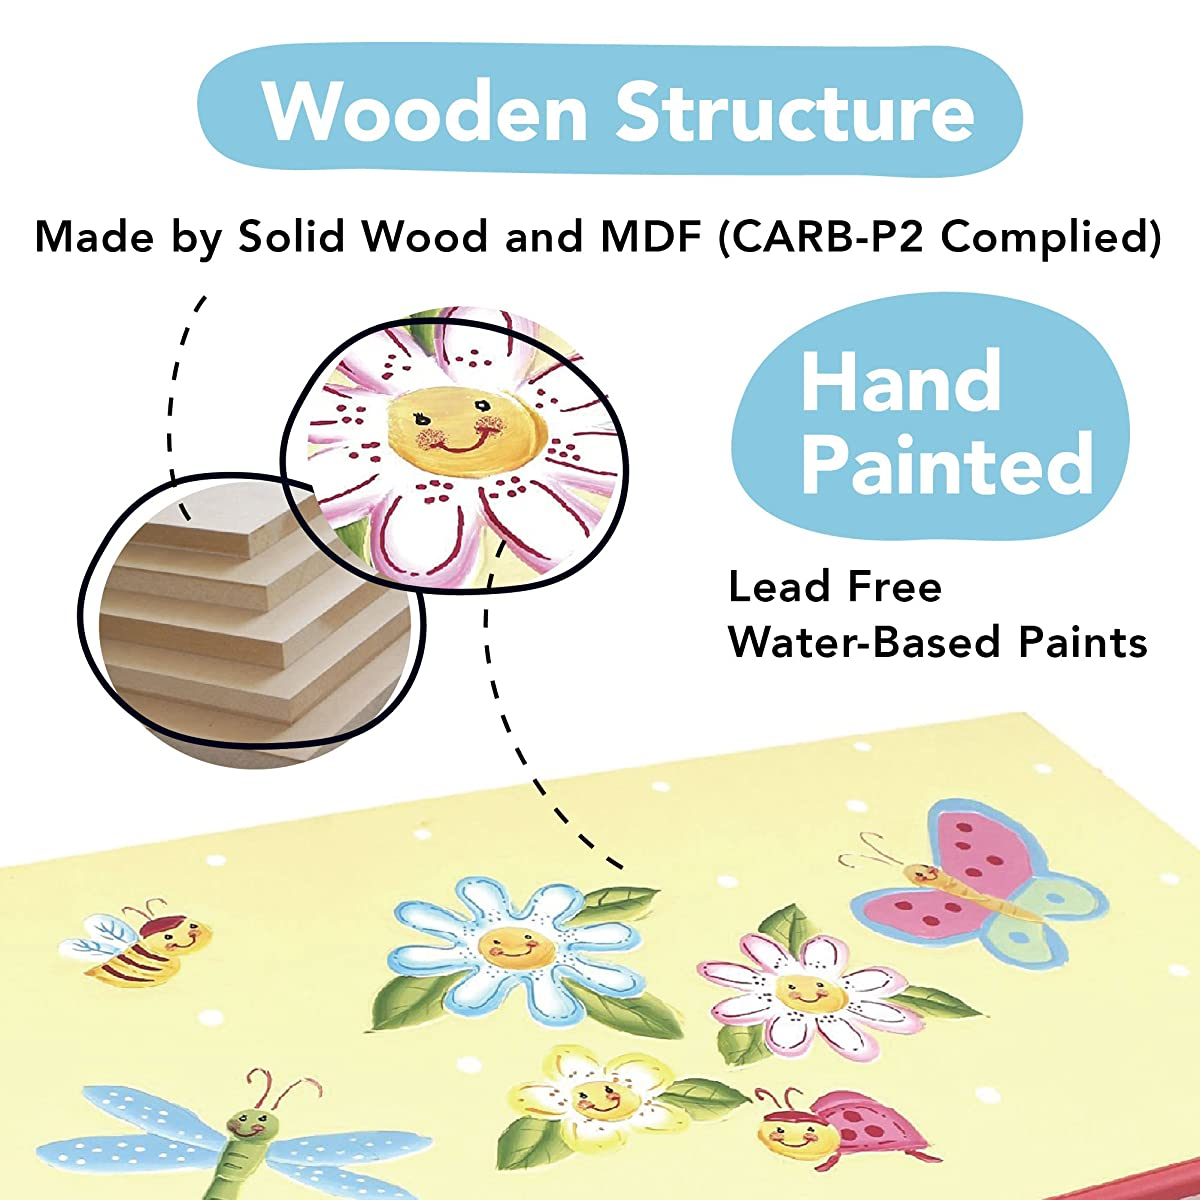 Fantasy Fields - Magic Garden Thematic Kids Wooden Toy Chest with Safety Hinges | Imagination Inspiring Hand Crafted & Hand Painted Details Non-Toxic, Lead Free Water-based Paint